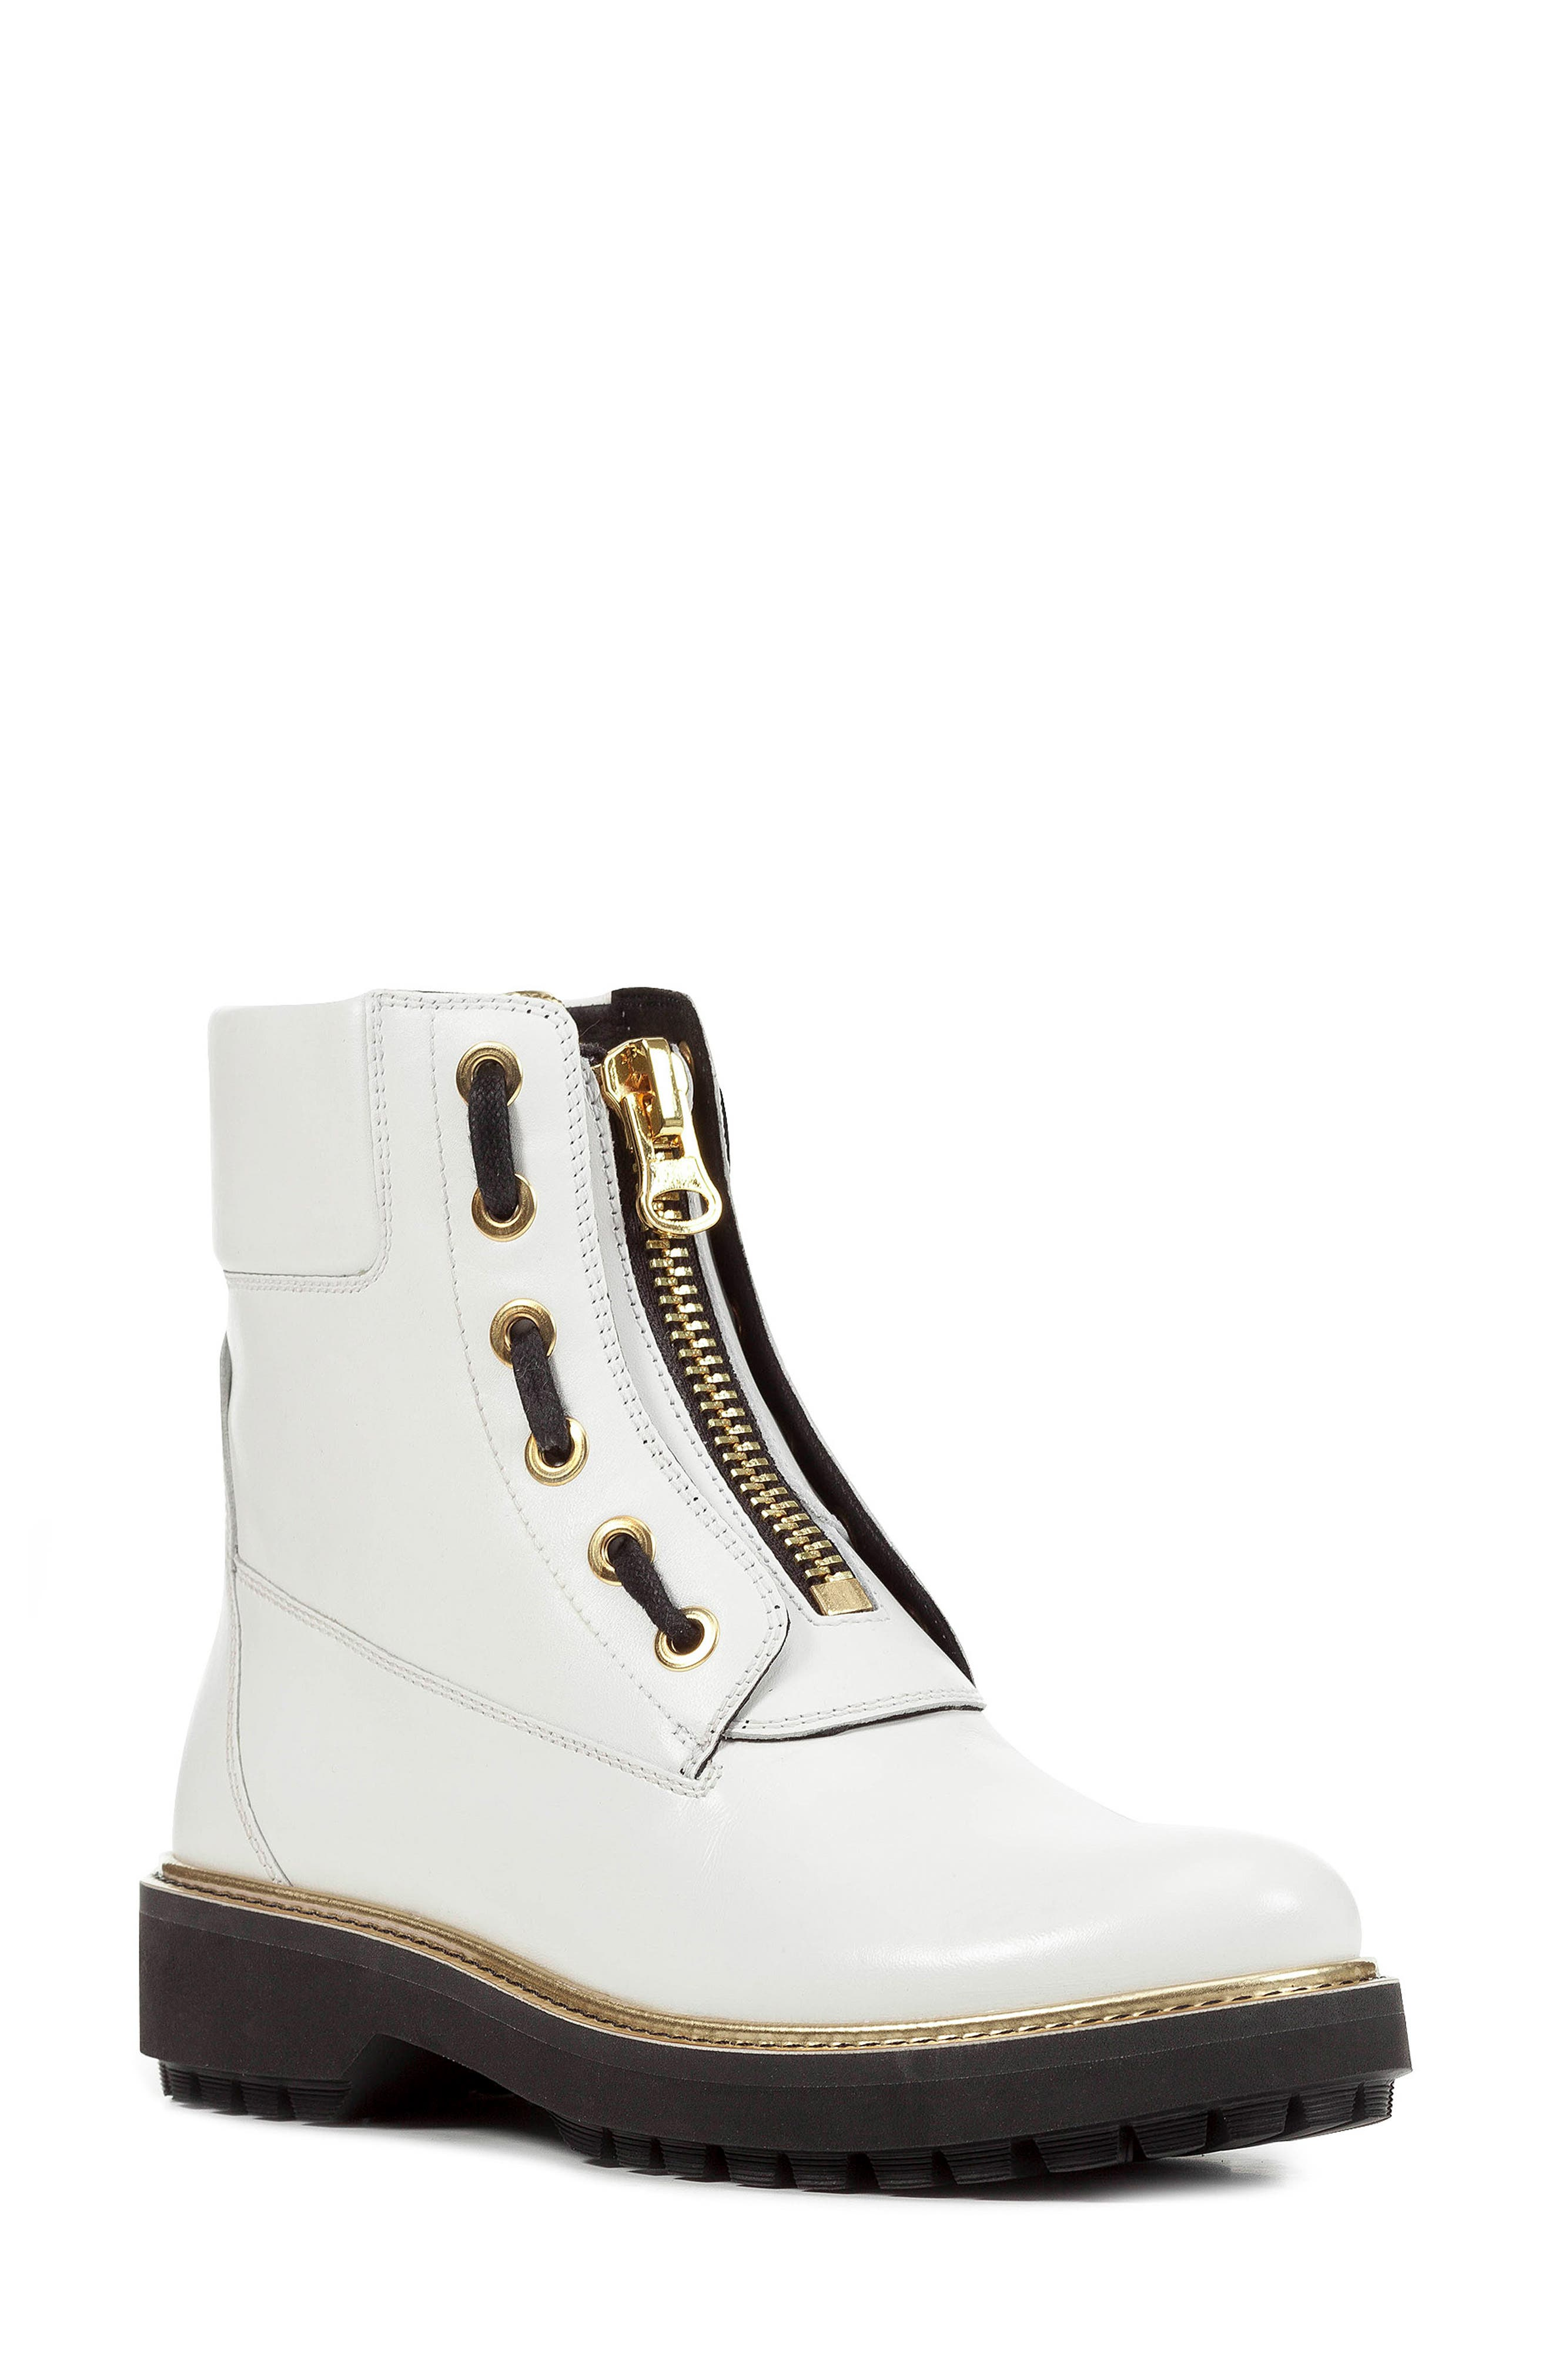 Geox Asheely Bootie - White